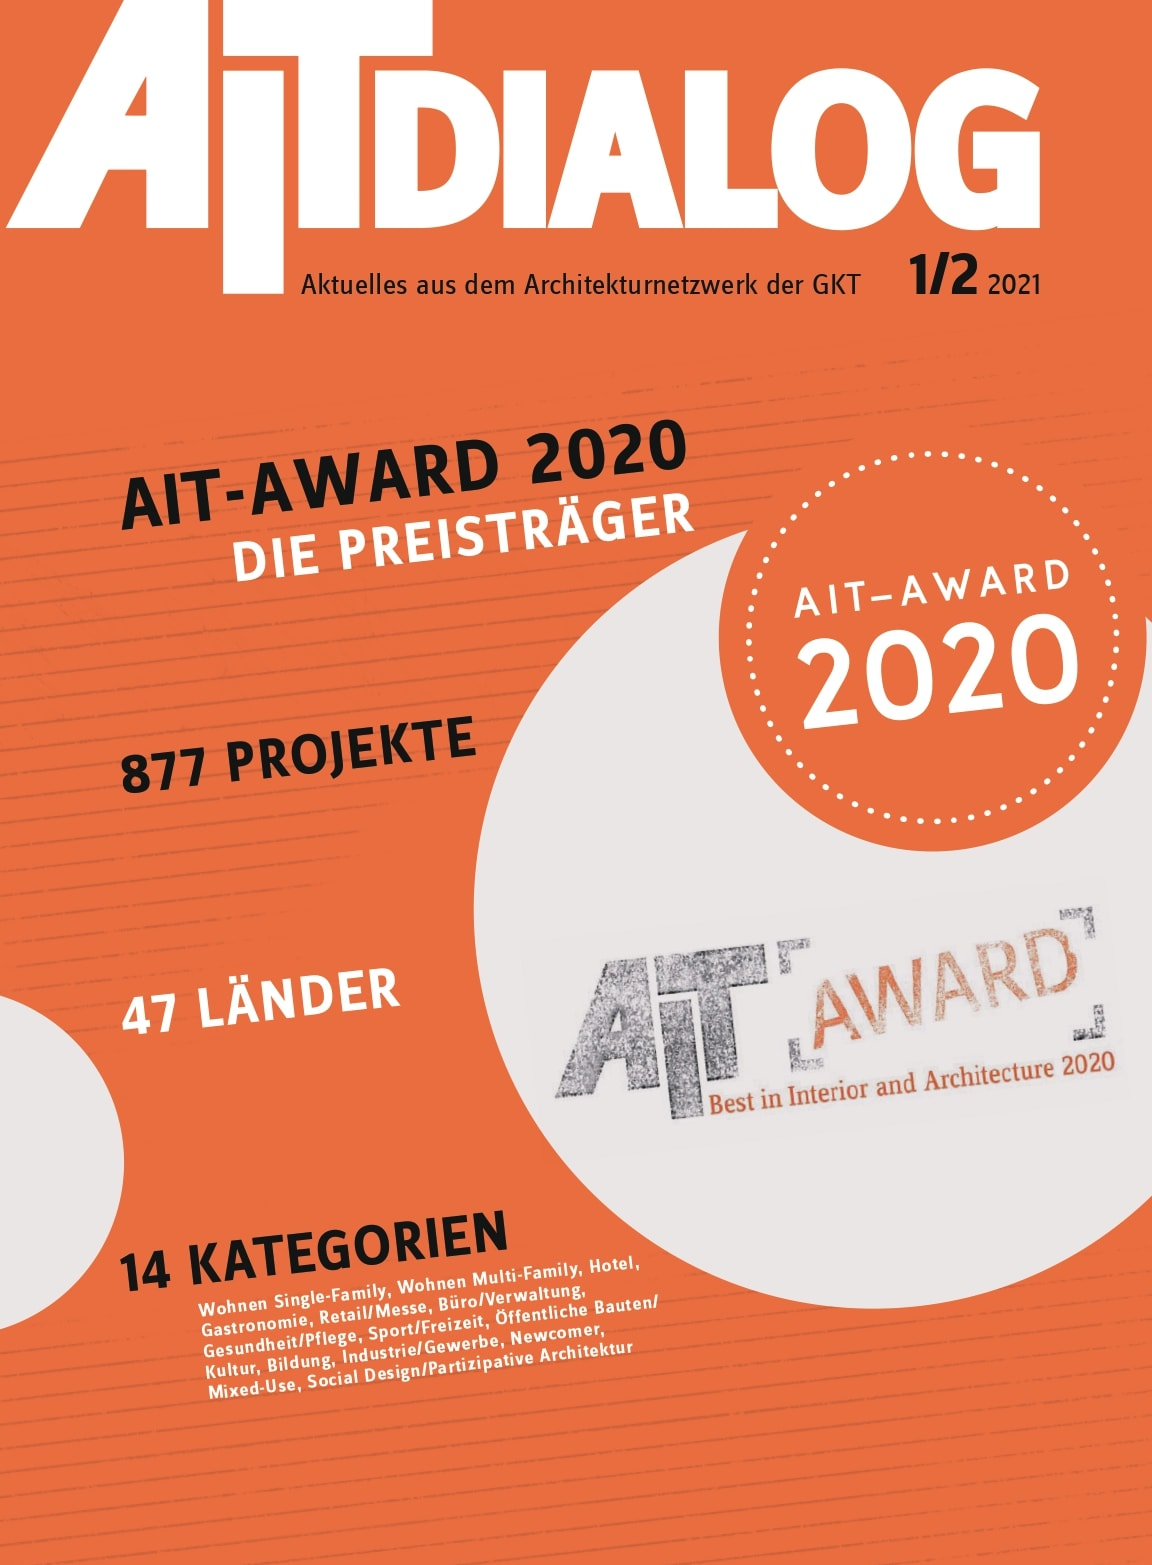 AIT-Award 2020: Publication of award winners